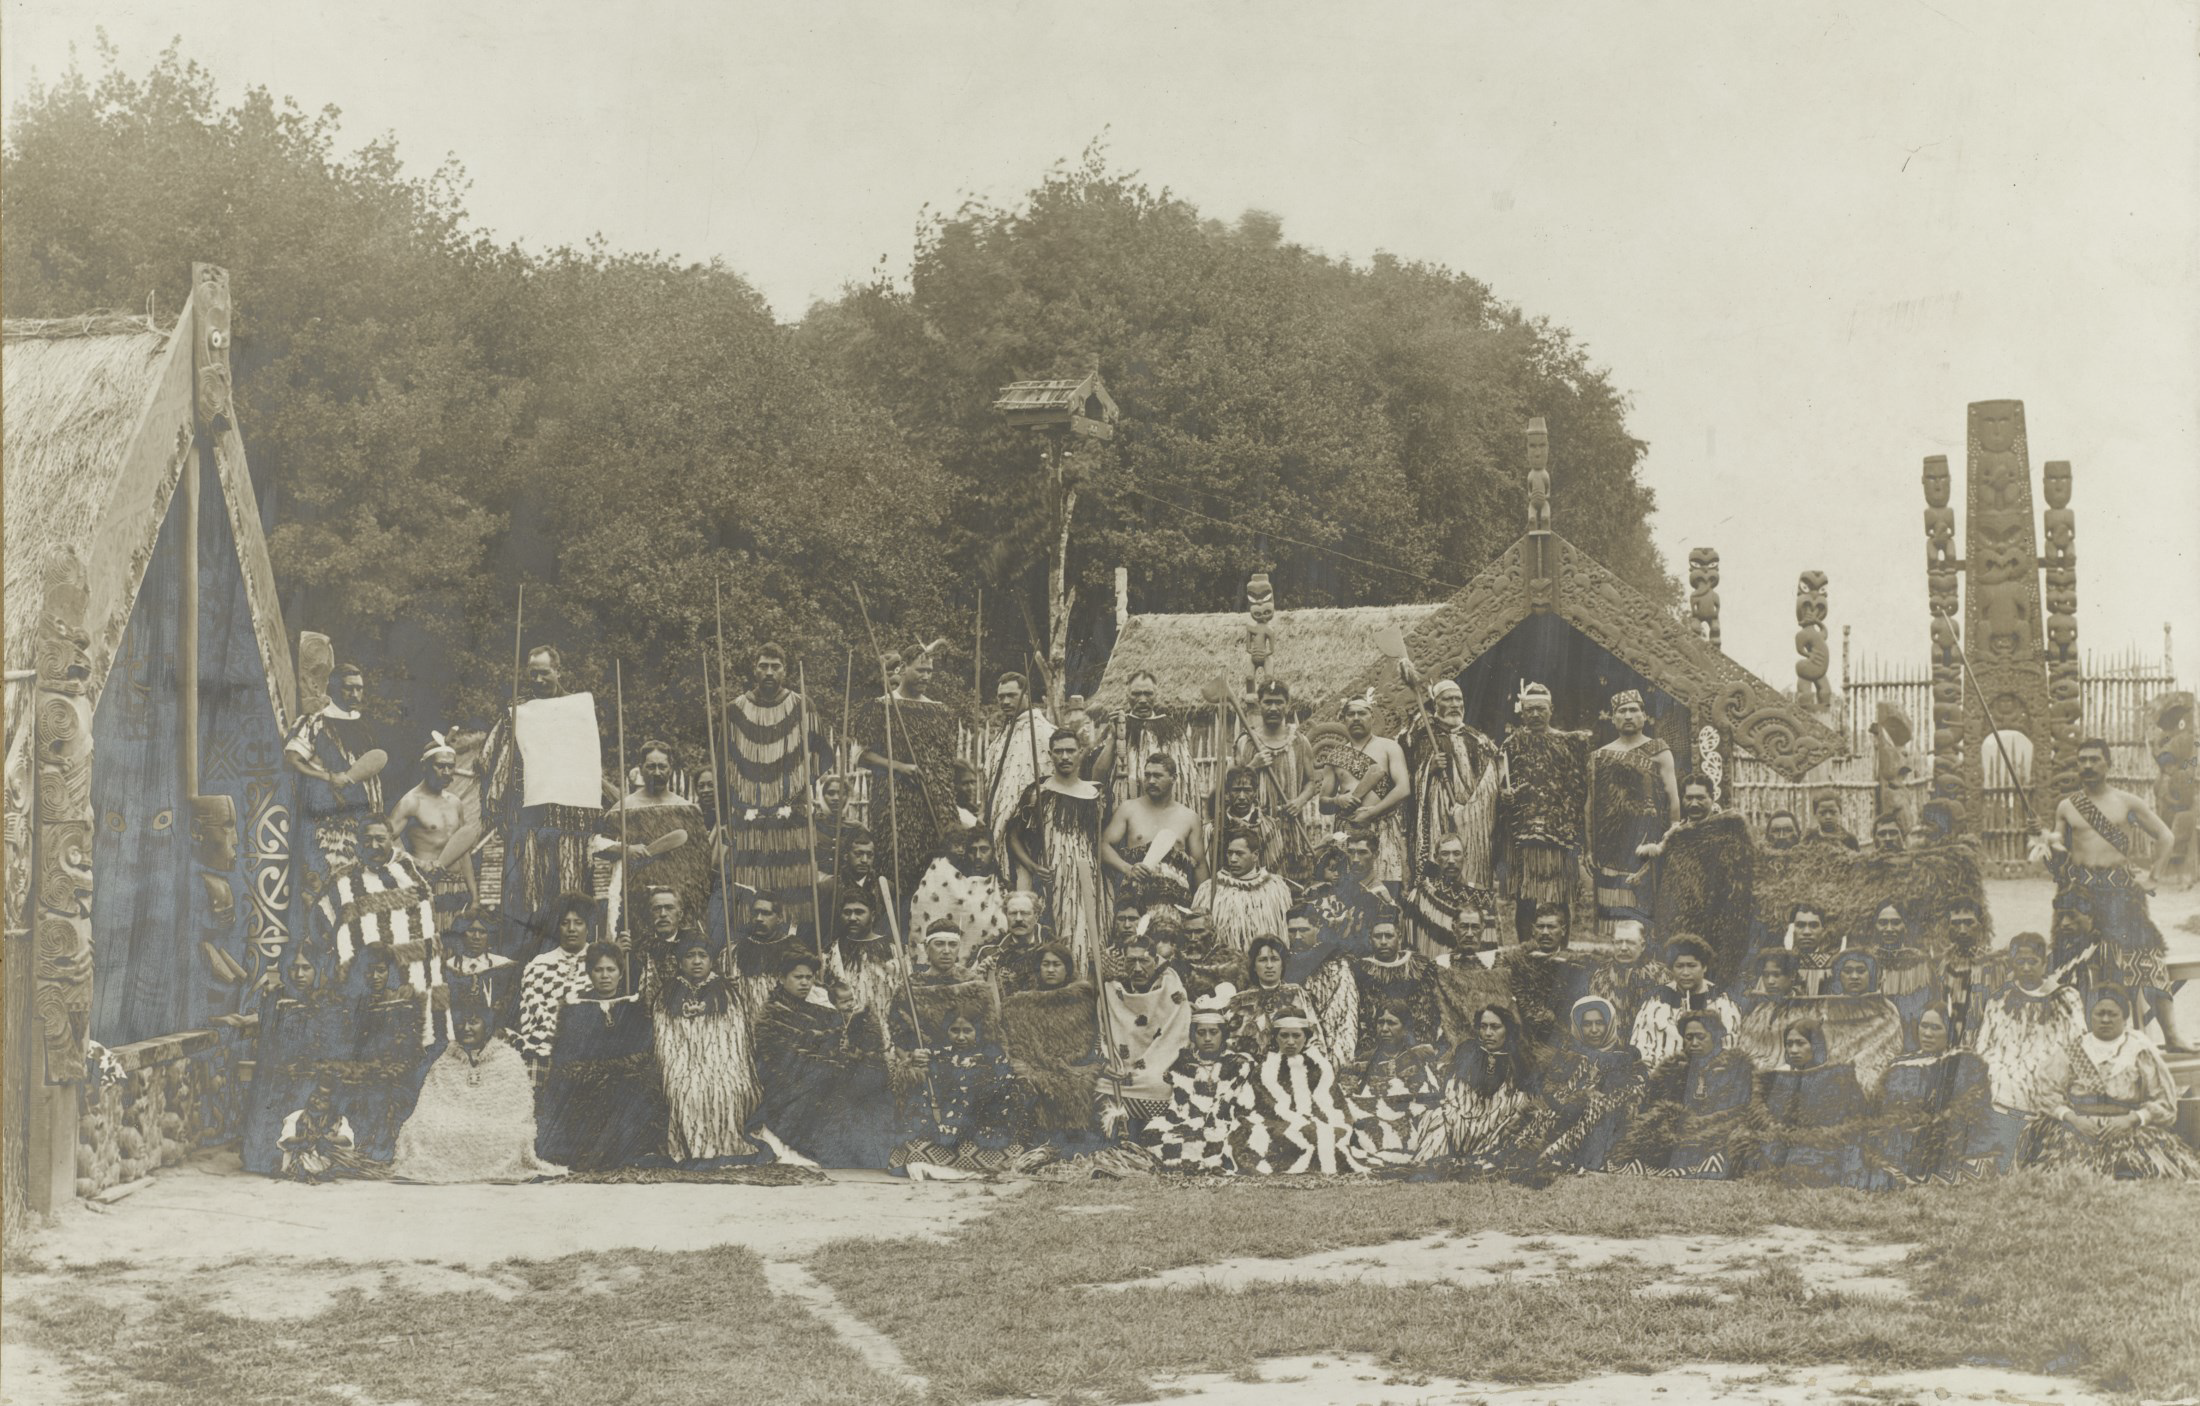 Group in ceremonial dress at the New Zealand International Exhibition, Christchurch, 1906-1907. Hocken Photographs Collection. James McDonald. Box-289-002.